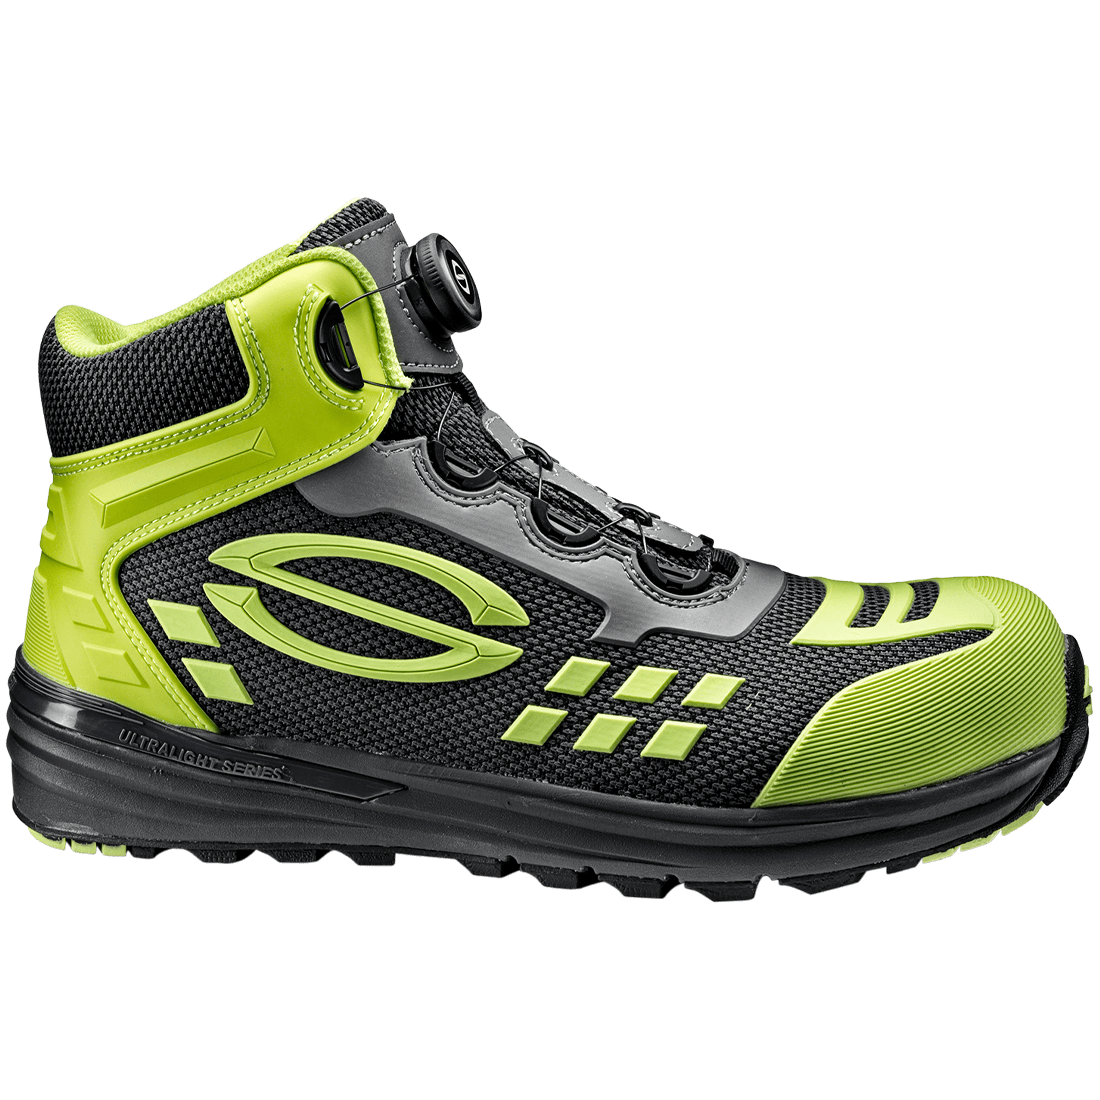 ULTRALIGHT LIME ARMOUR SHOE